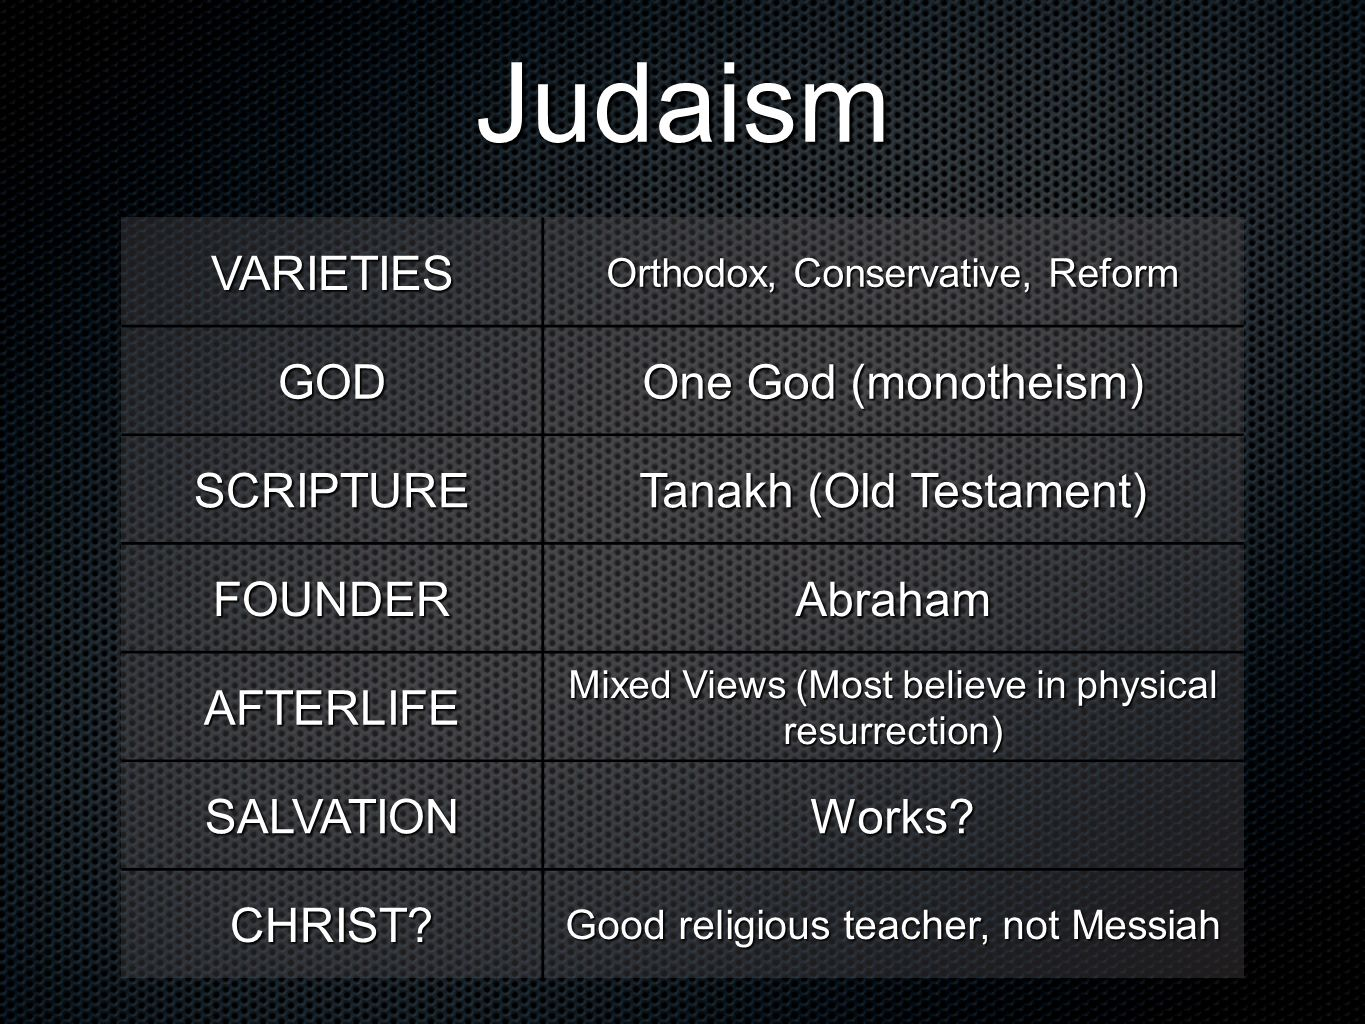 Judaism VARIETIES Orthodox, Conservative, Reform GOD One God (monotheism) SCRIPTURE Tanakh (Old Testament) FOUNDERAbraham AFTERLIFE Mixed Views (Most